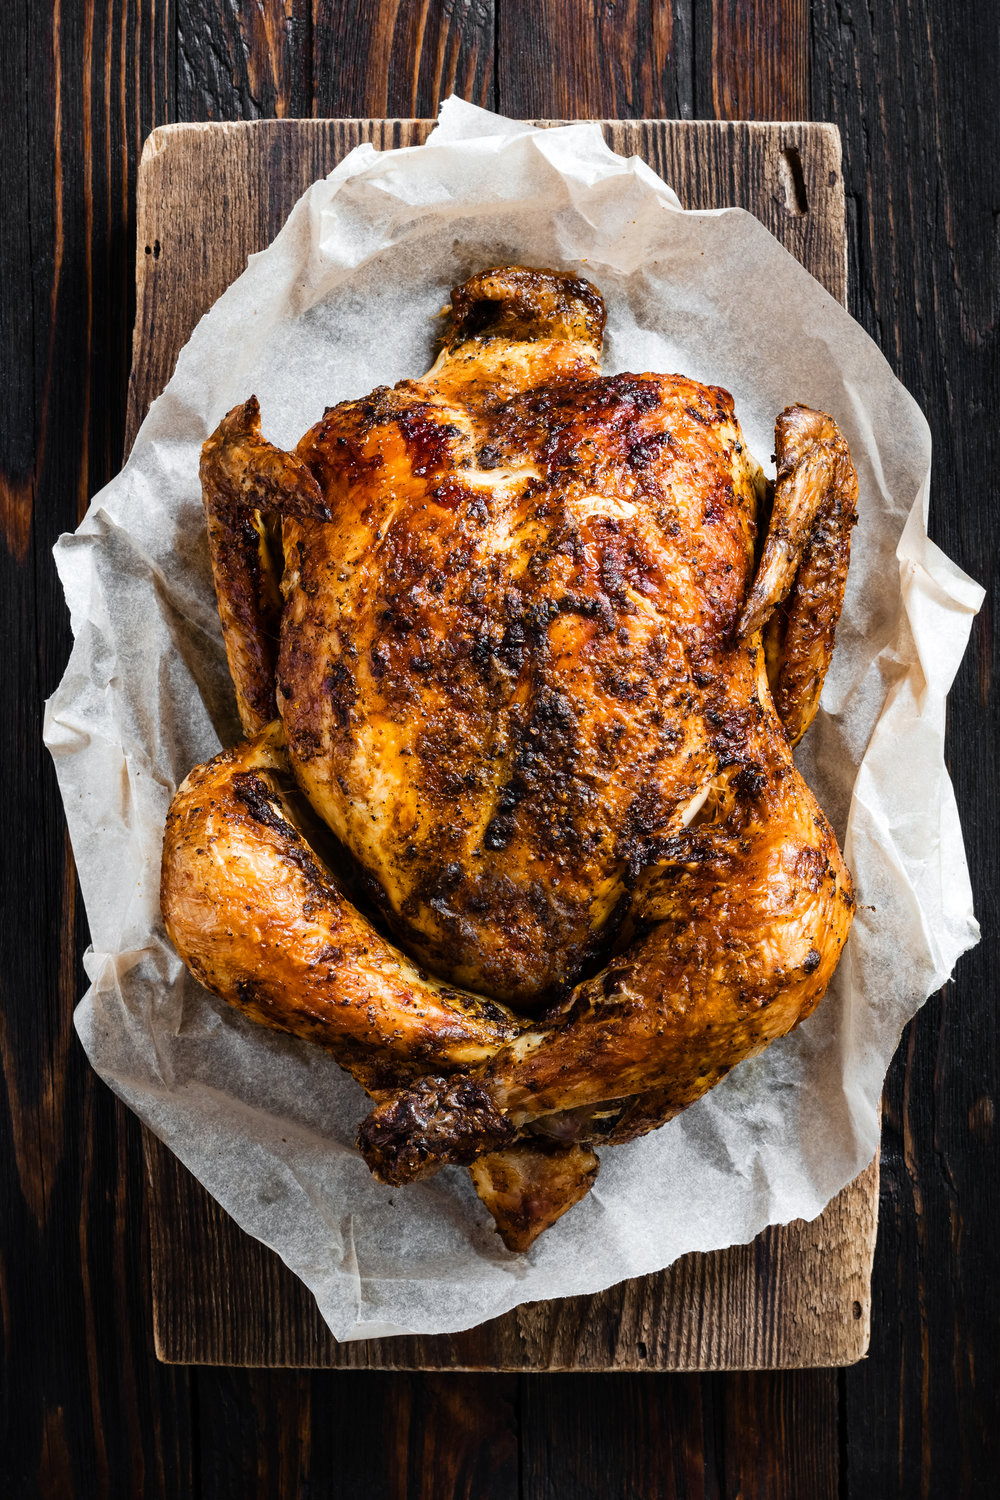 Thomas Keller's Roast Chicken from Epicurious